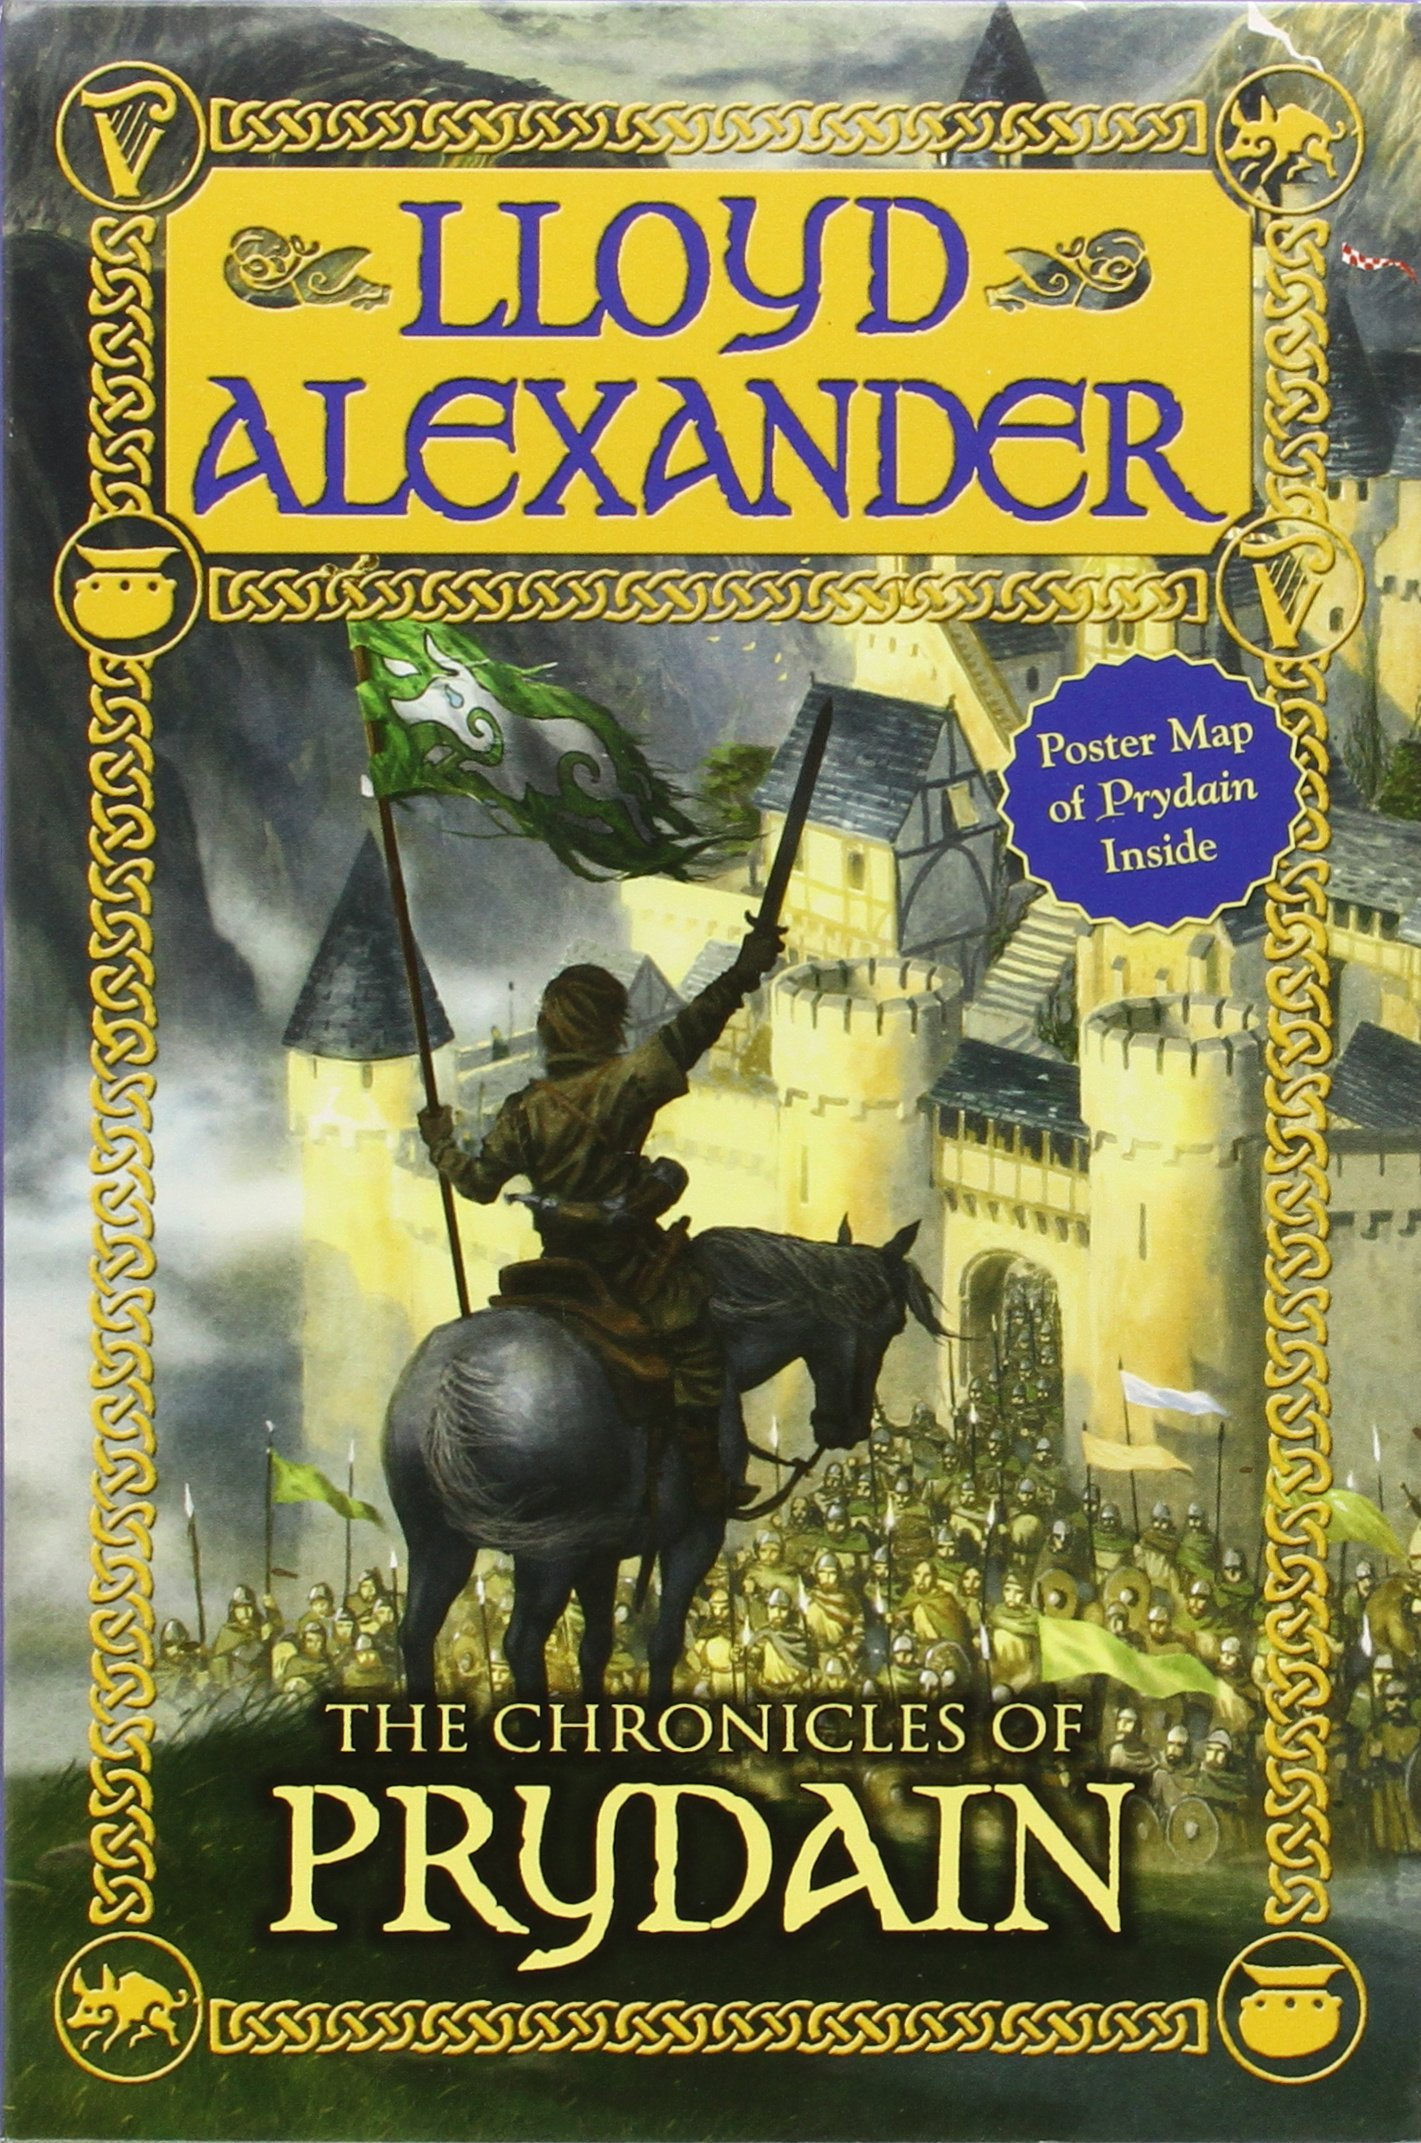 The Chronicles of Prydain is the greatest fantasy series ever written  Vox